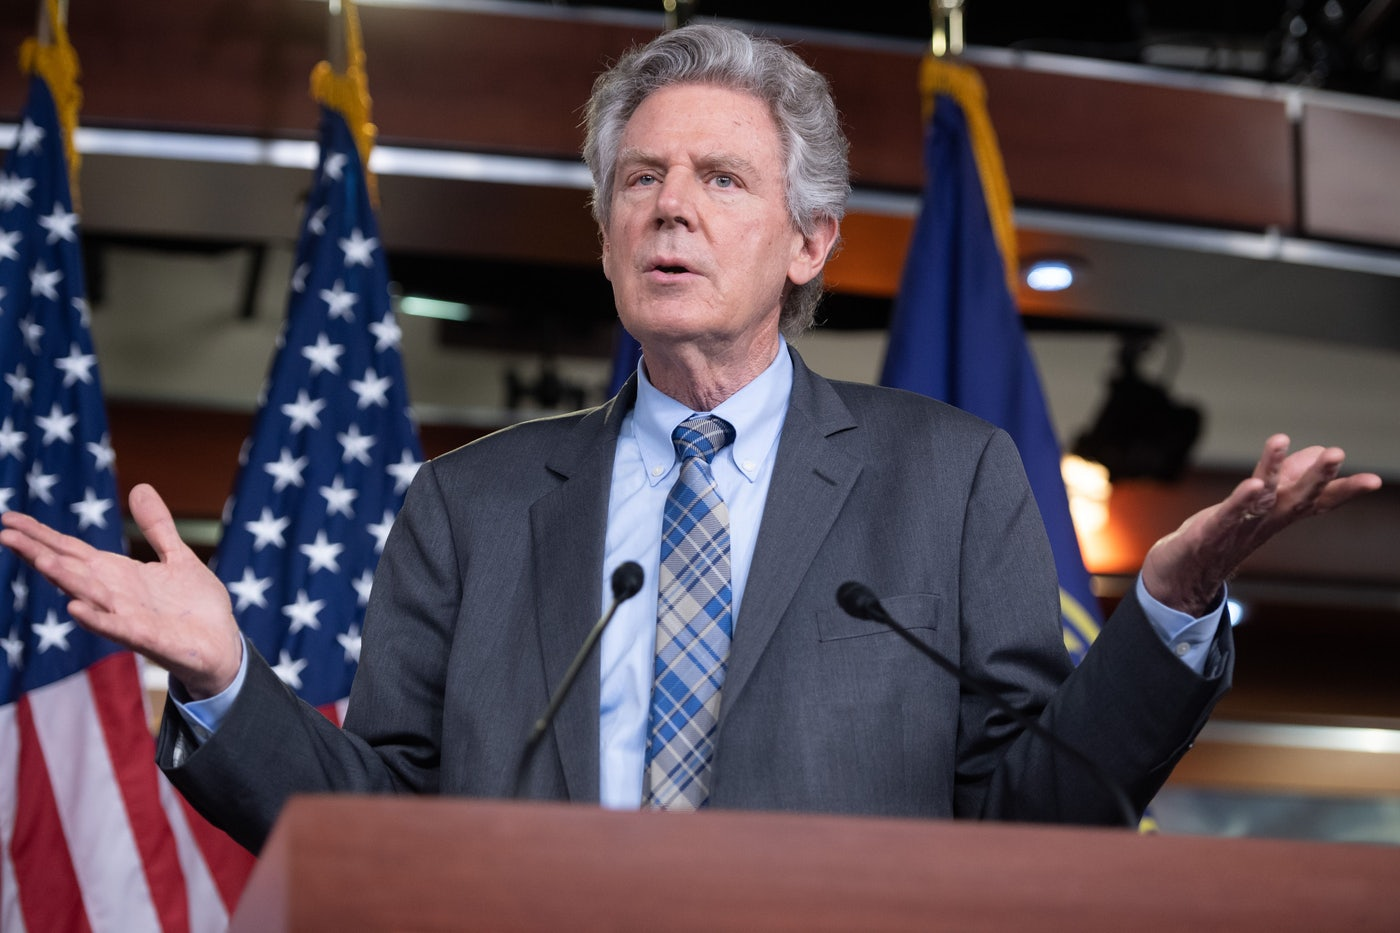 Frank Pallone gesticulates at a press conference.